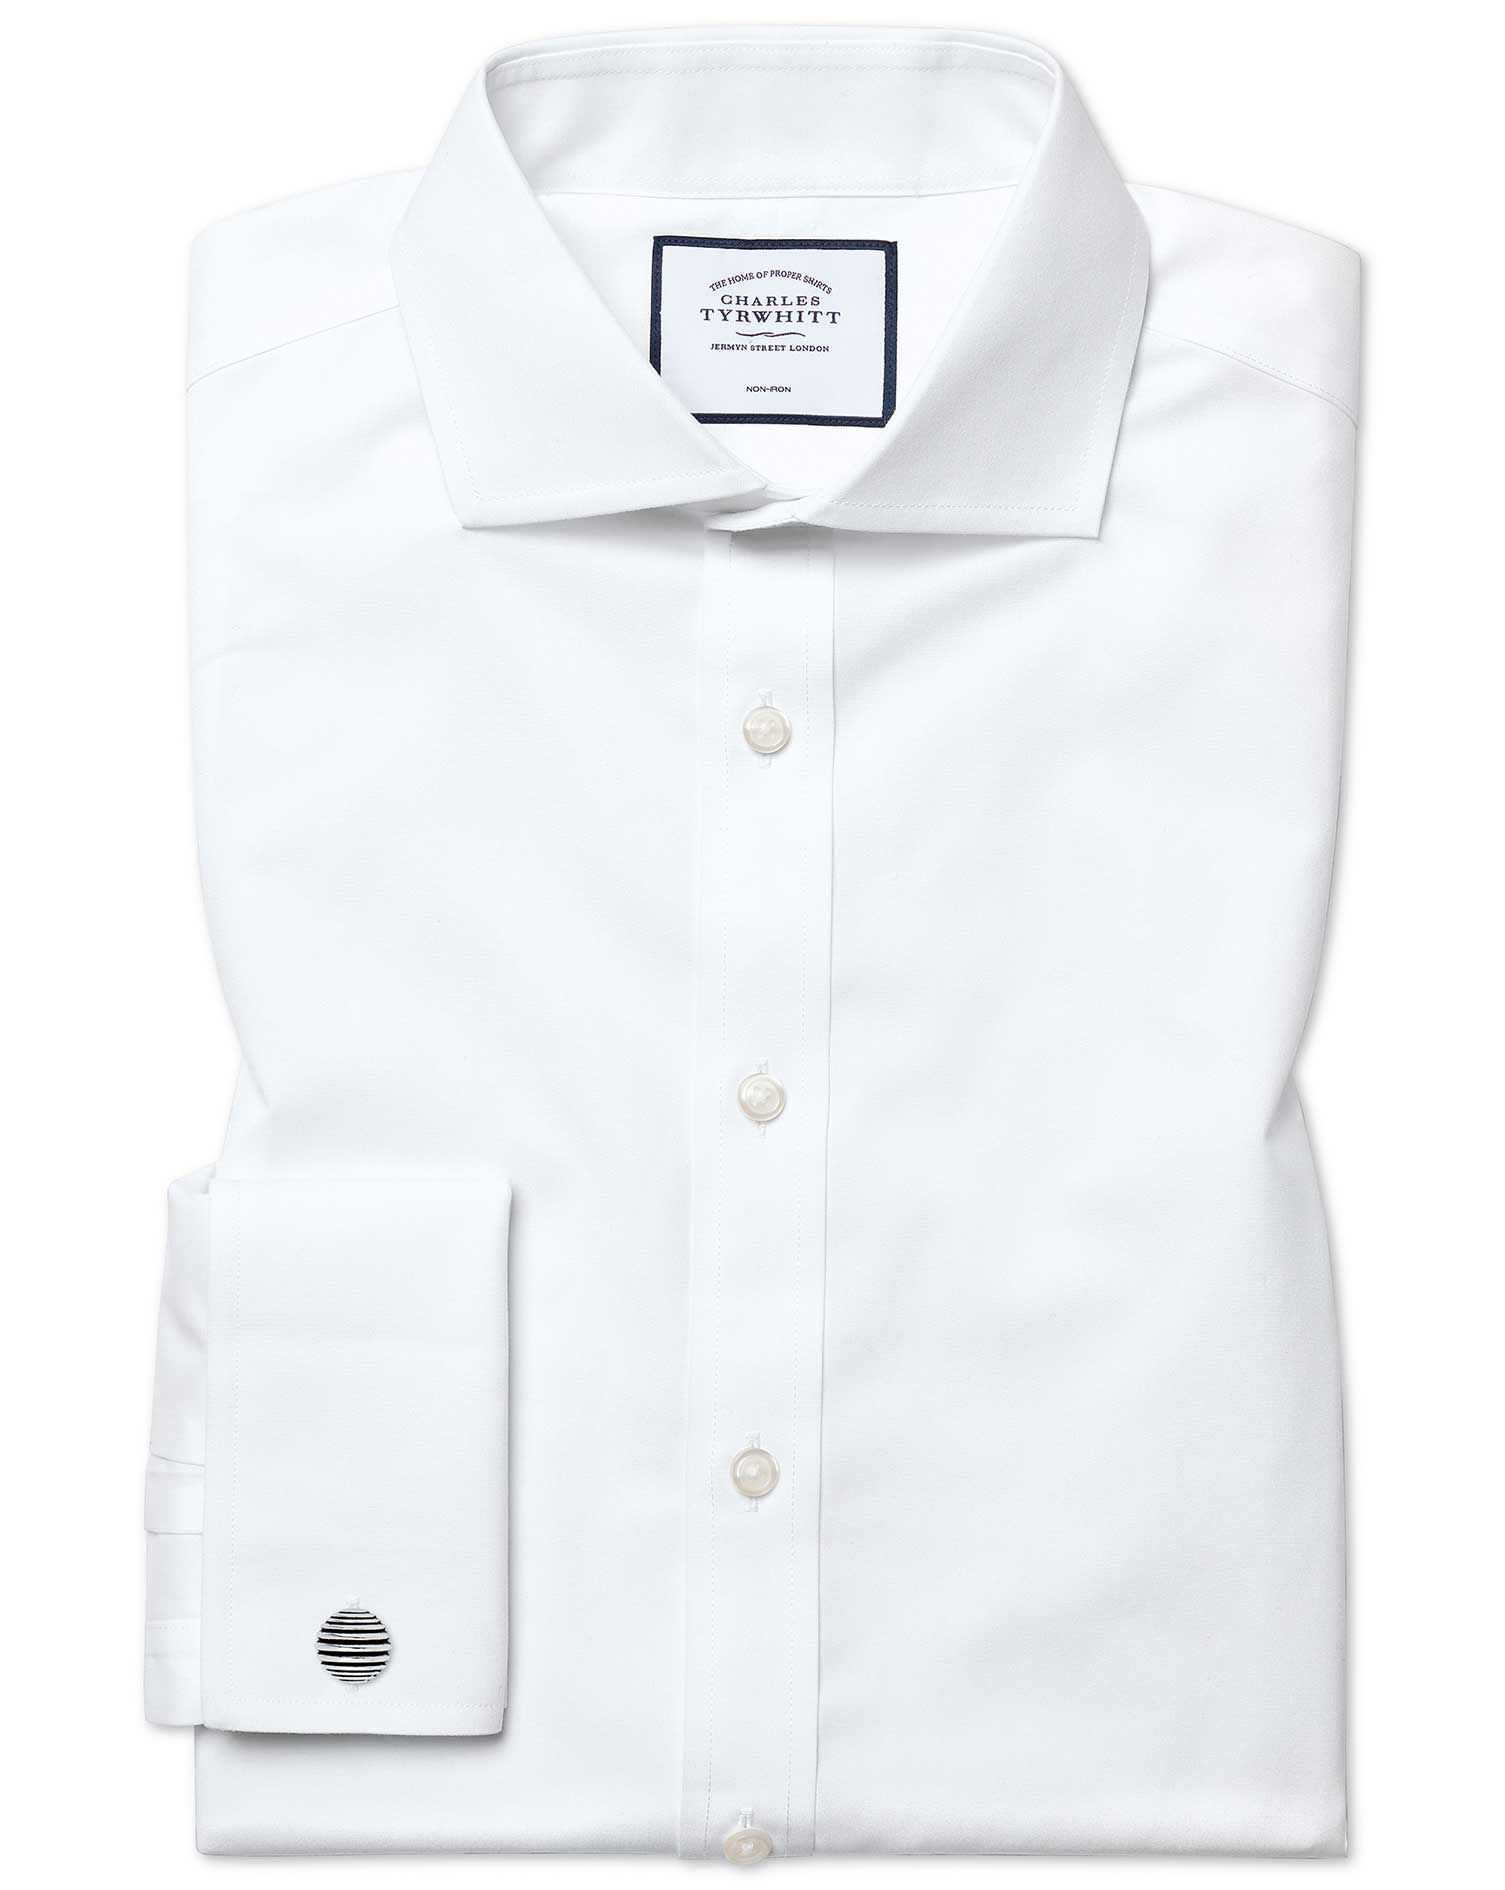 Extra Slim Fit Cutaway Non-Iron Poplin White Cotton Formal Shirt Single Cuff Size 17/37 by Charles T